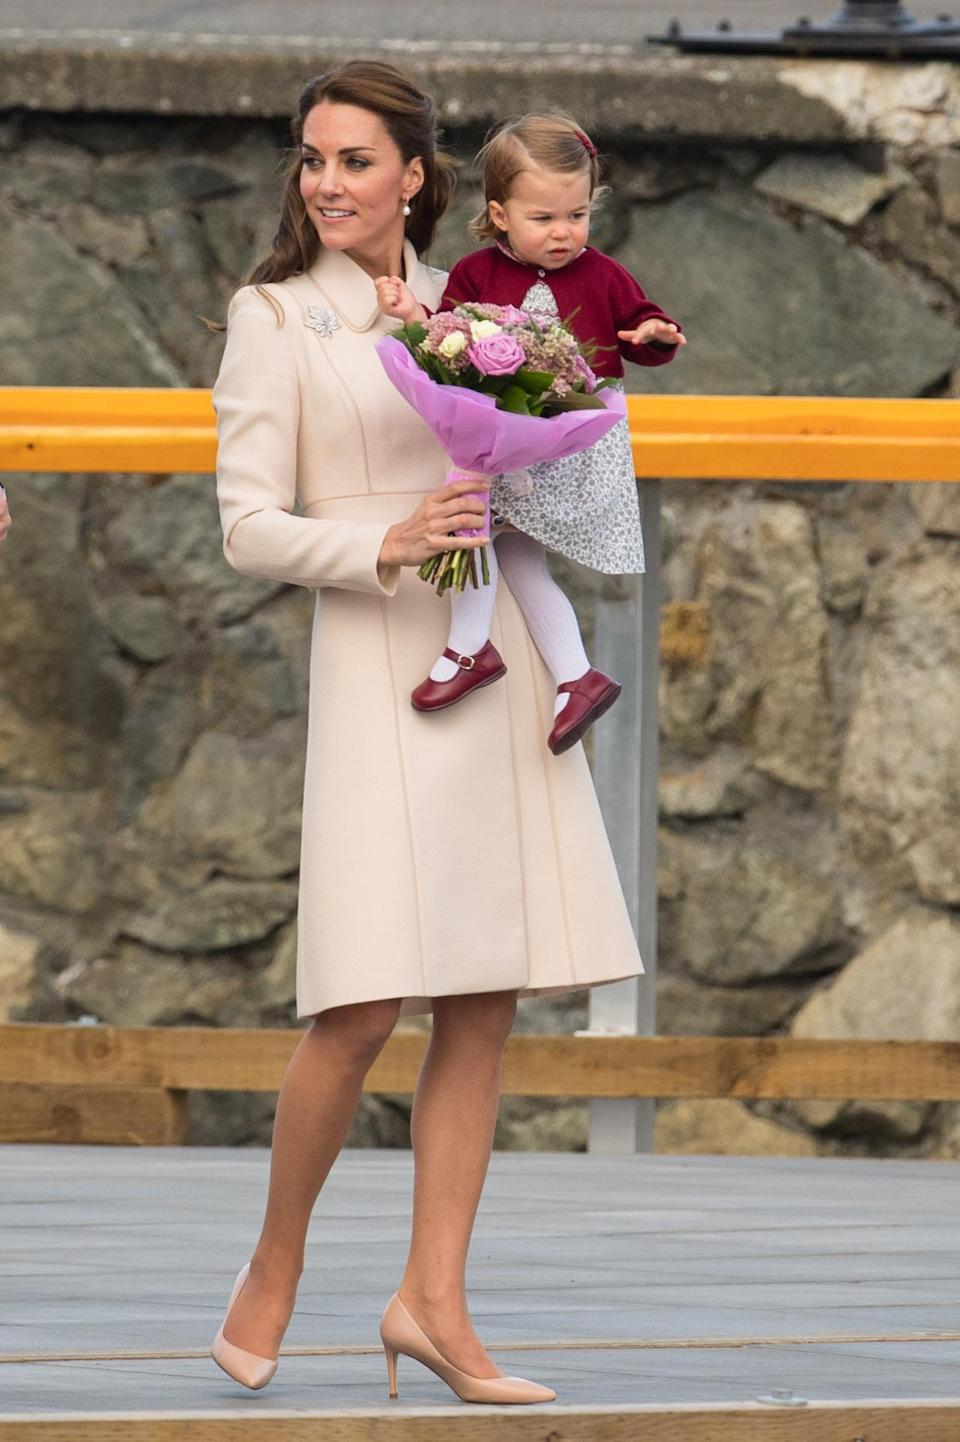 <p>As she bid farewell to Canada, the Duchess wore an elegant nude collared coat complete with matching satin heels. A maple leaf brooch - the emblem of Canada - proved a fitting accessory. </p><p><i>[Photo: PA]</i> </p>